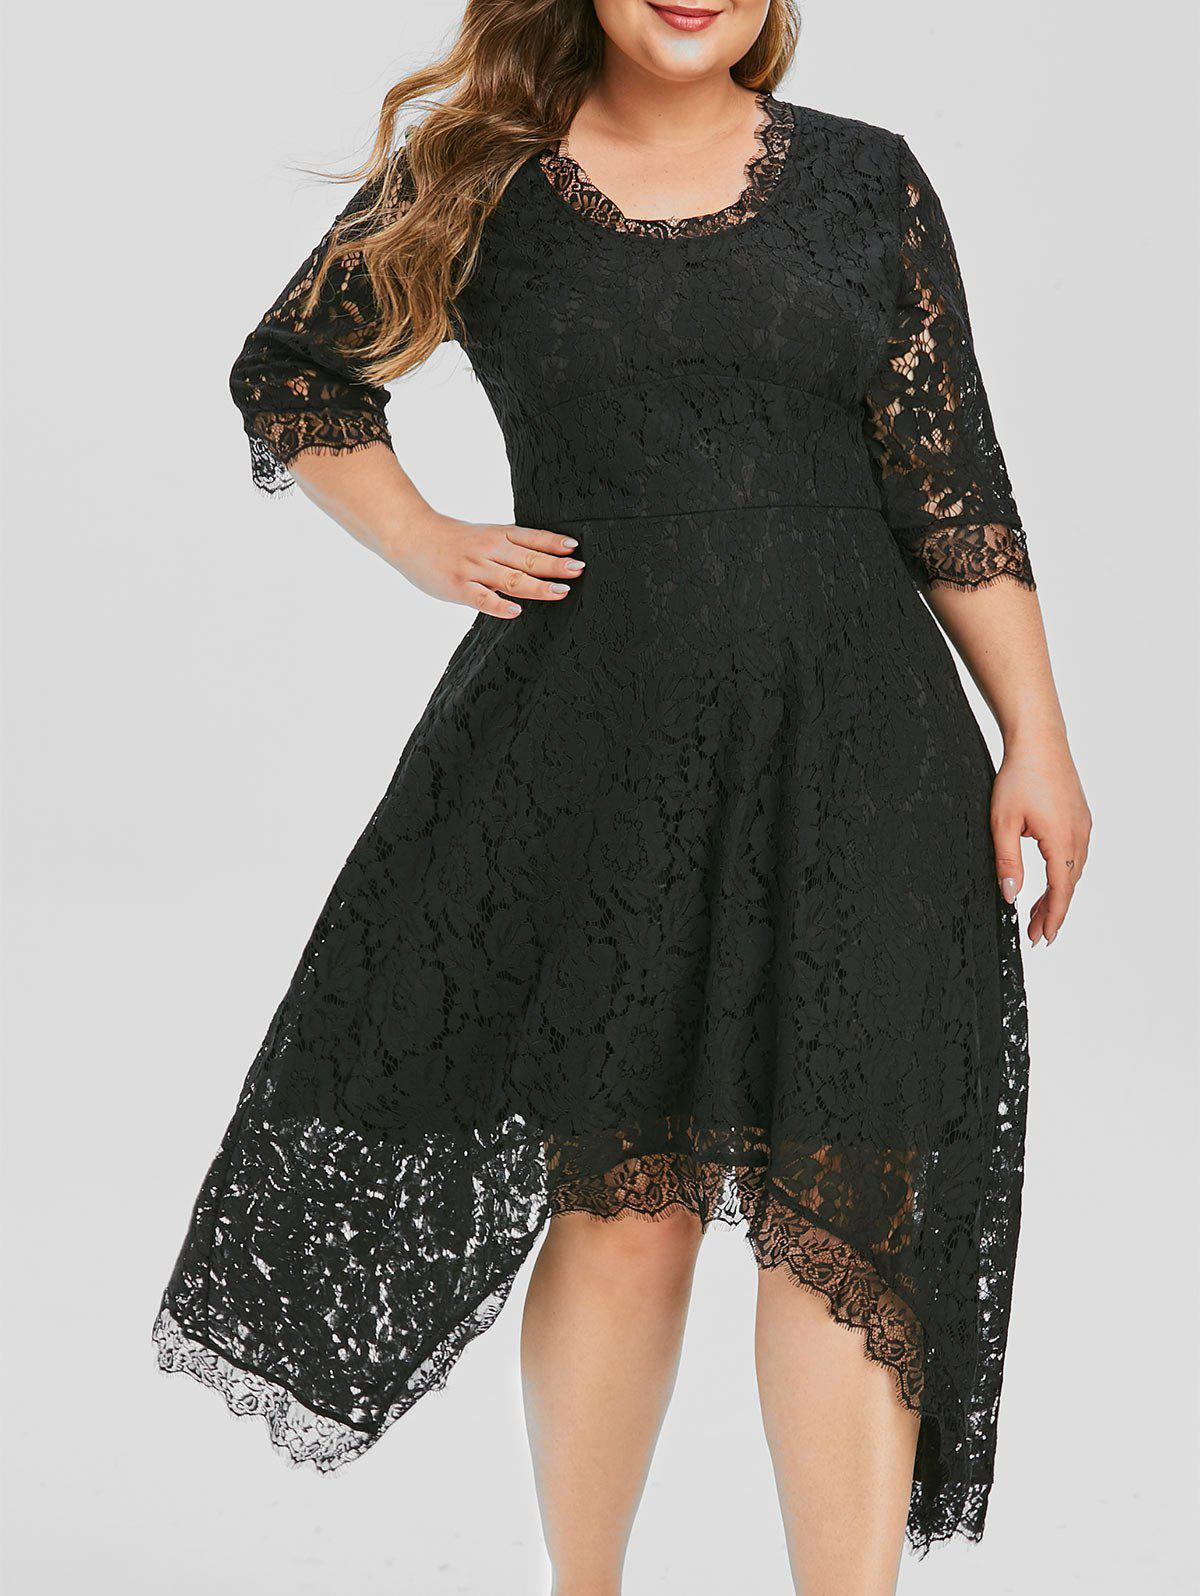 Plus Size Lace Handkerchief Party Dress - BLACK 3X